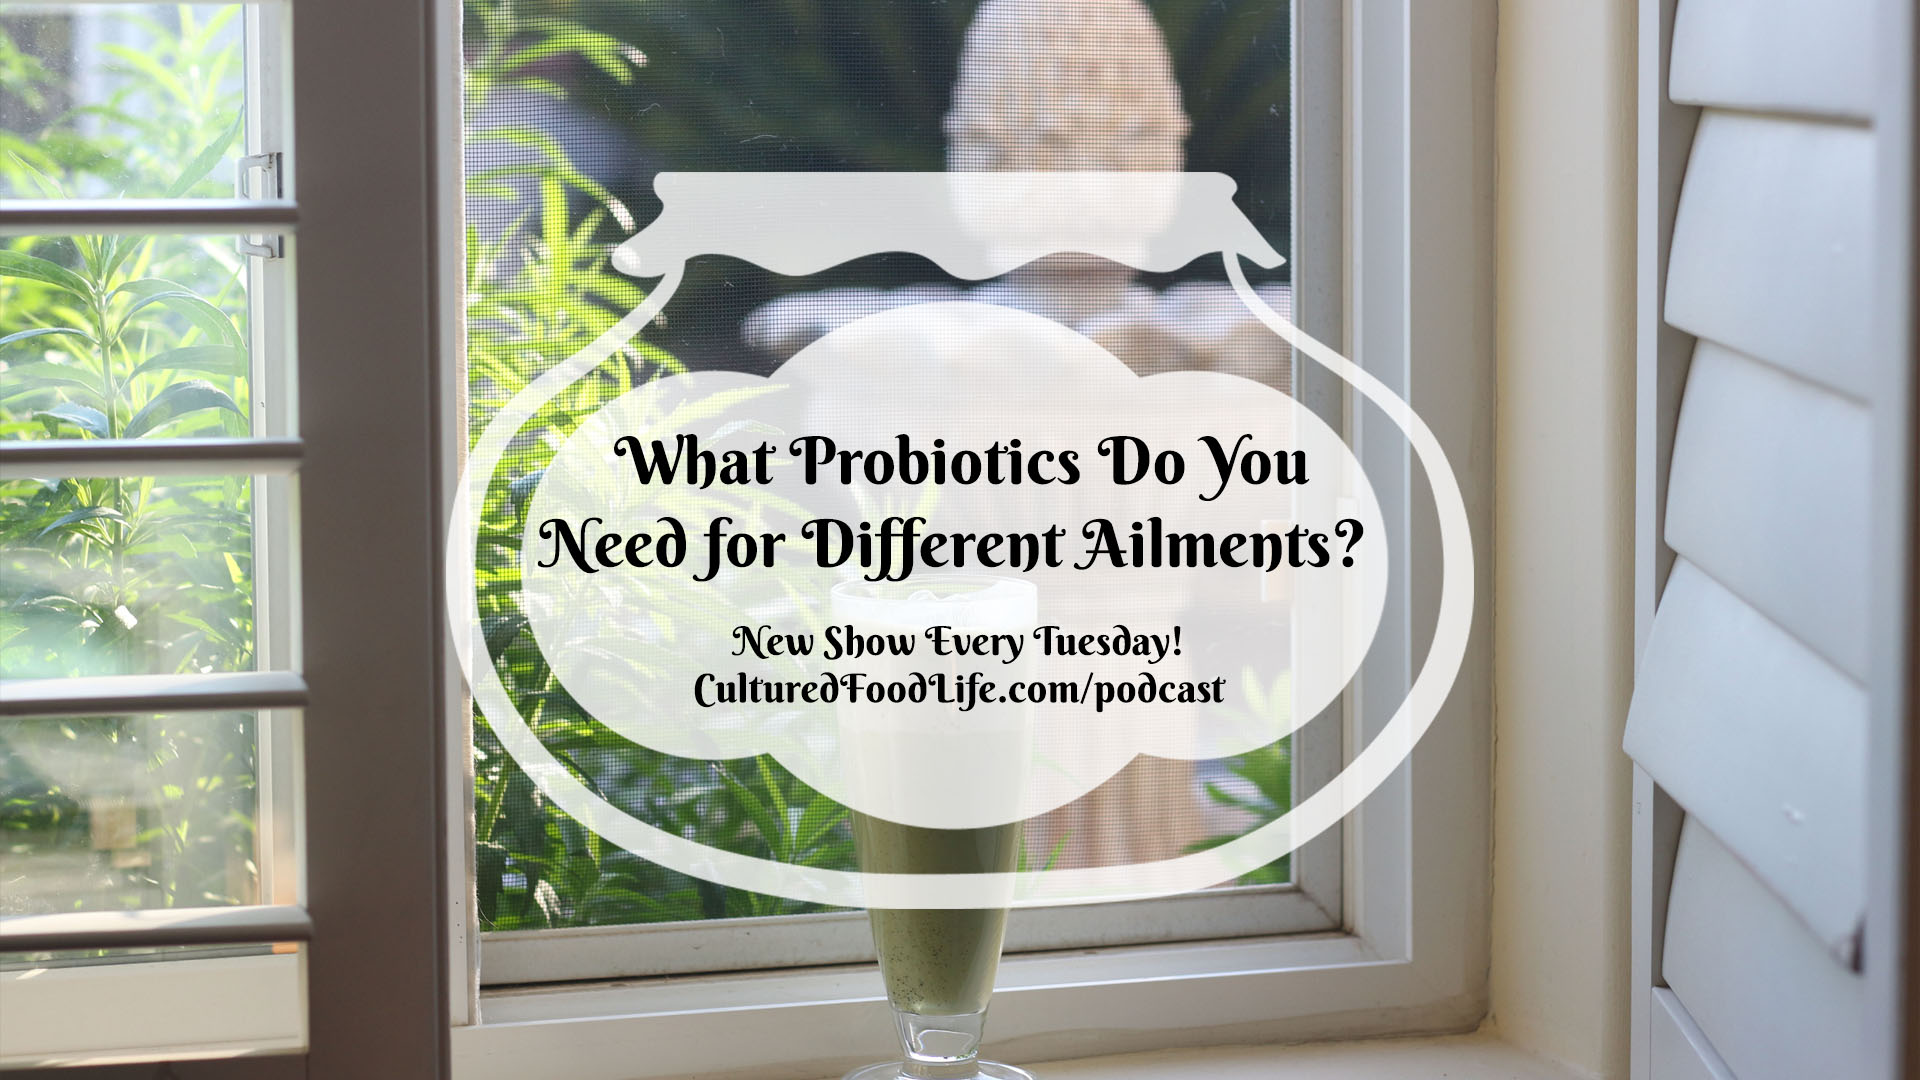 What Probiotics Do You Need for Different Ailments